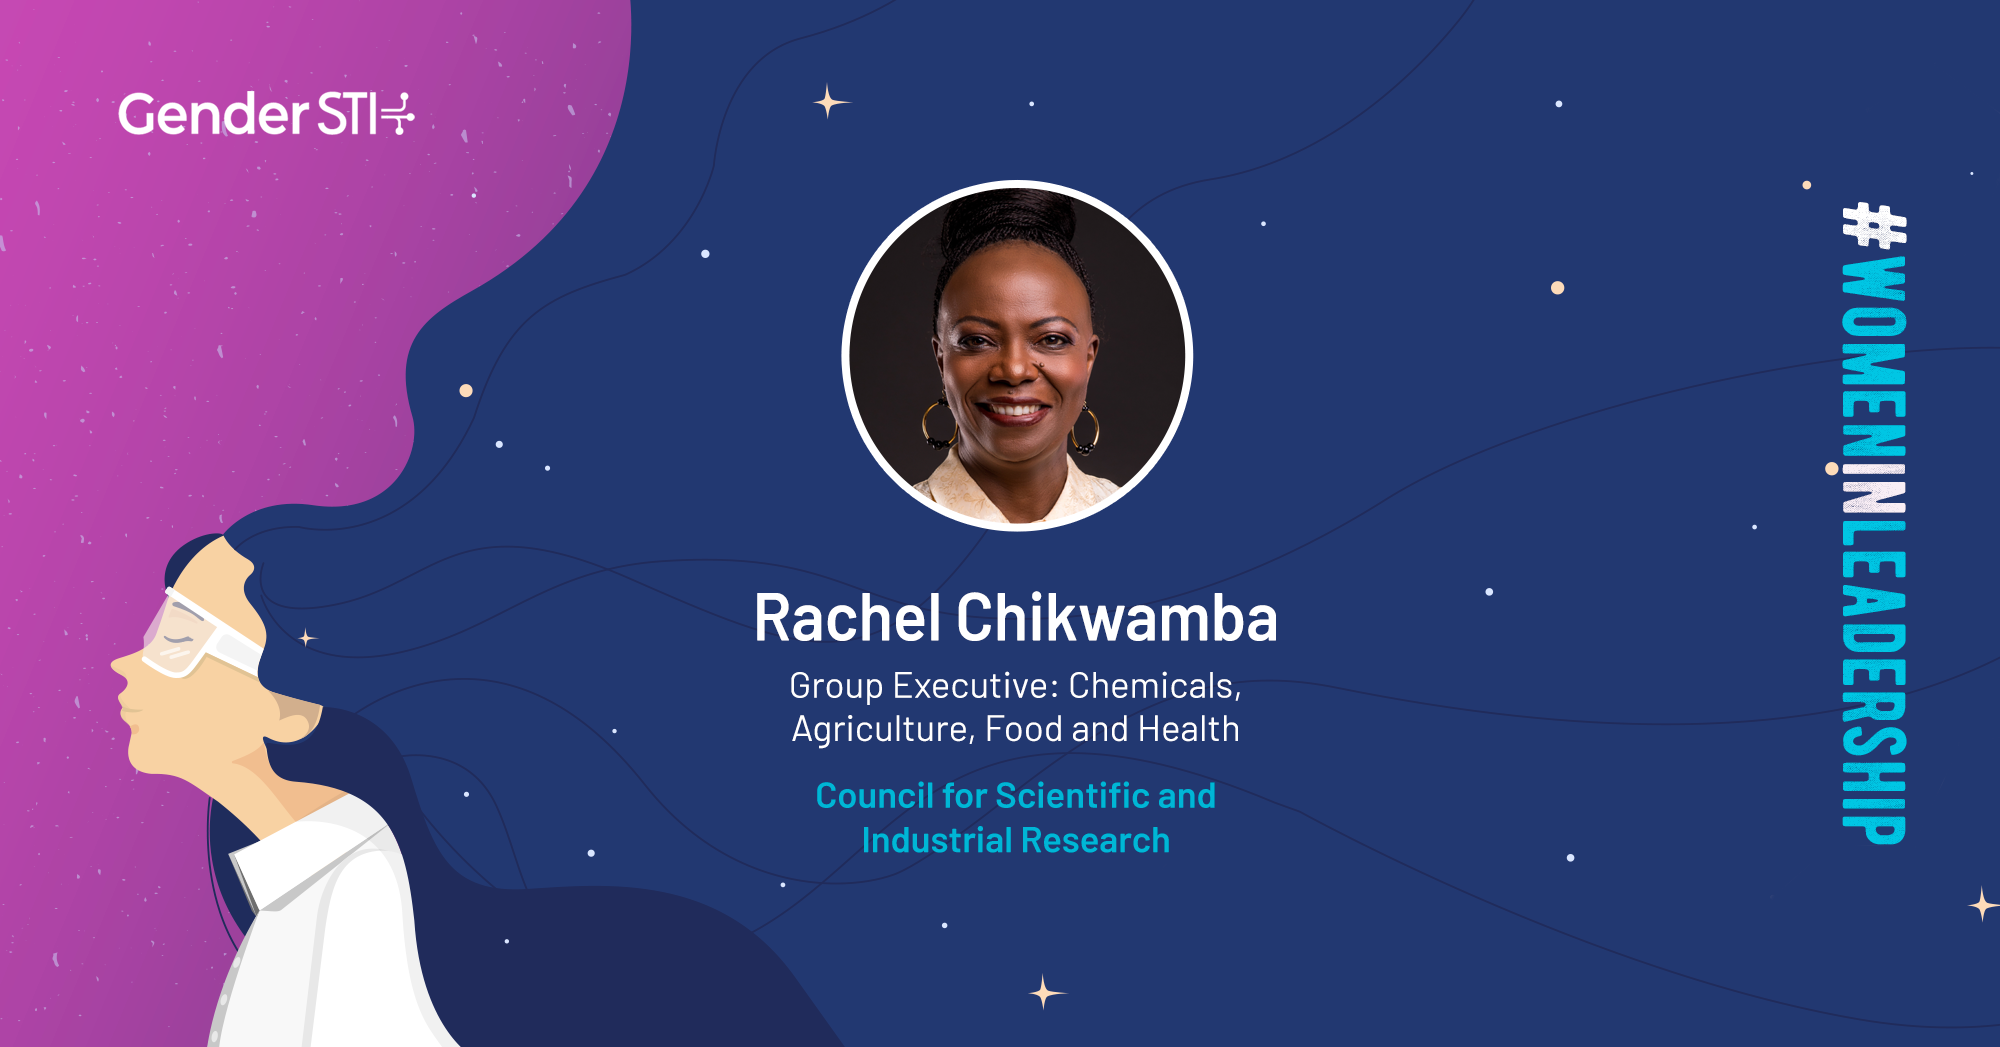 Rachel Chikwamba, CSIR Group Executive, is one of Gender STI's #WomenInLeadership nominees.